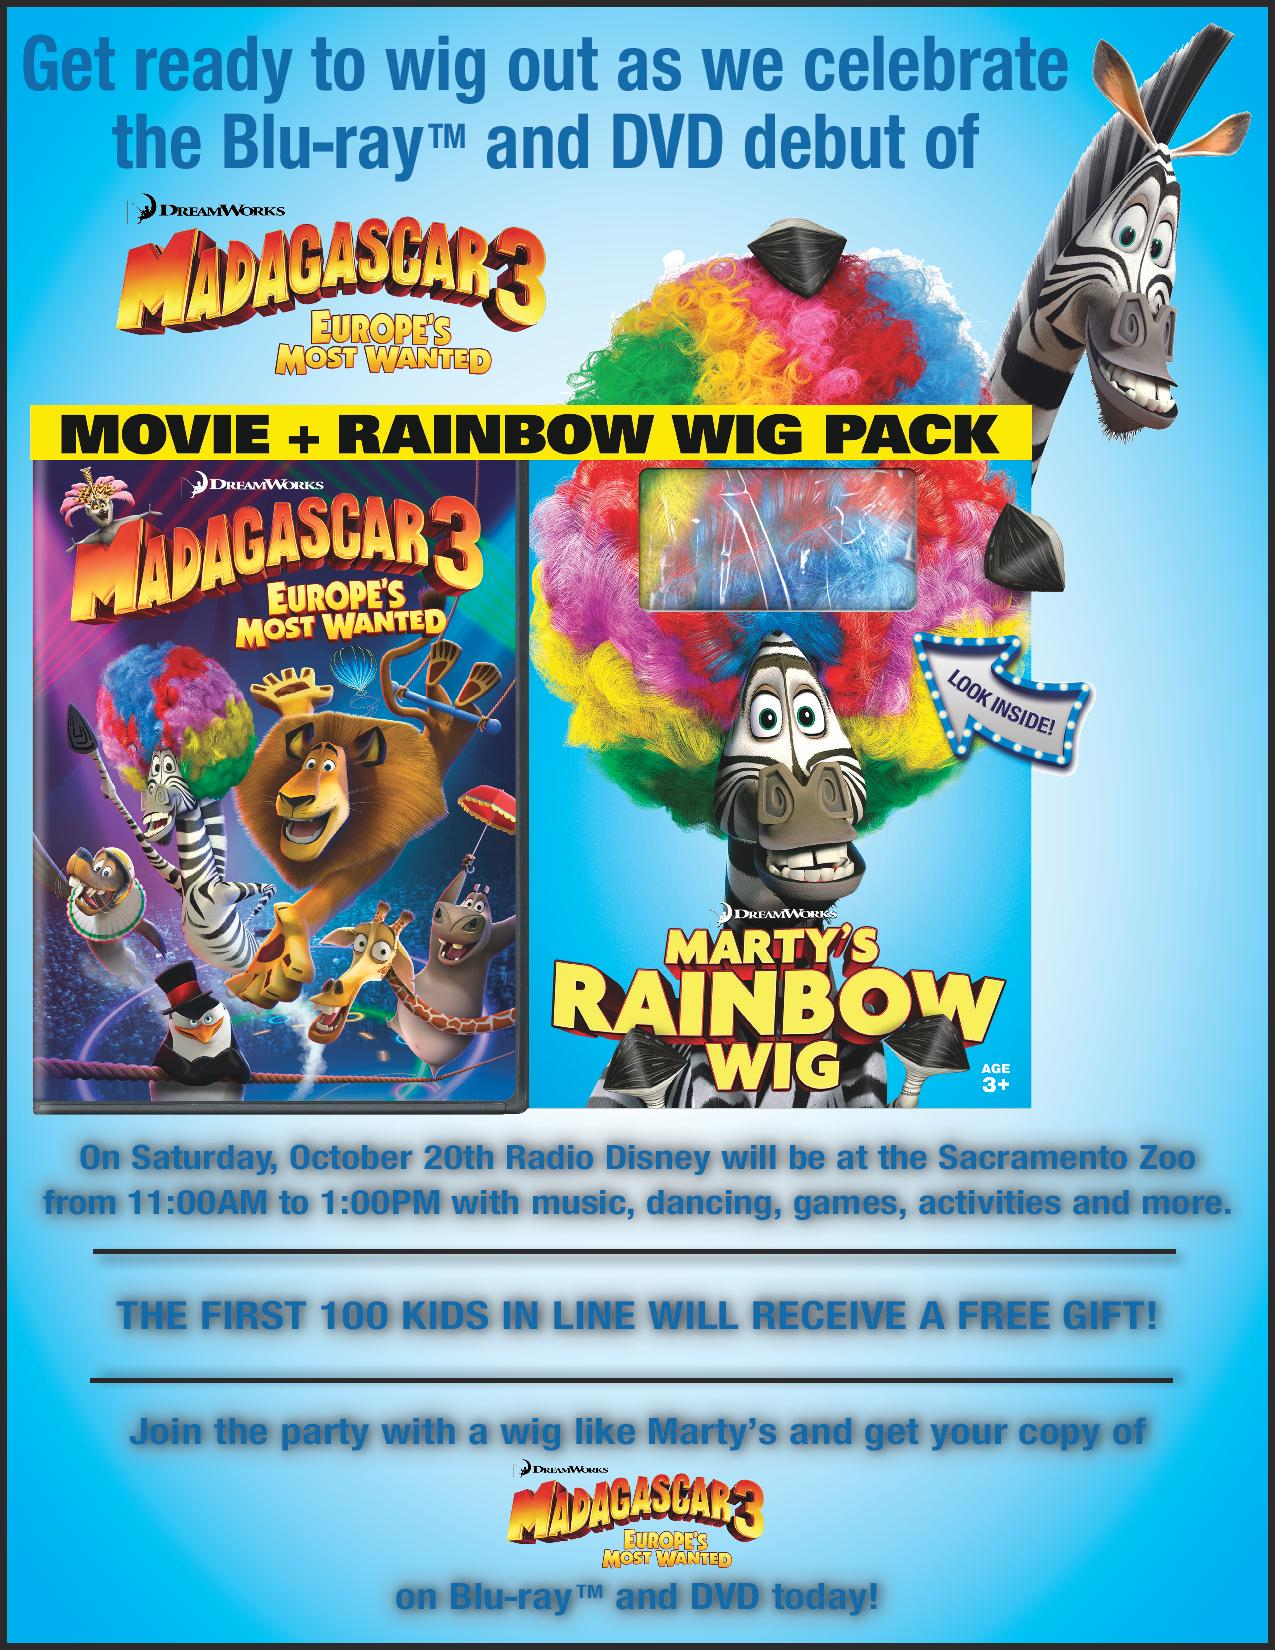 Radio Disney at the Sacramento Zoo for DVD Debut of Madagascar 3: Europe's Most Wanted + Giveaway